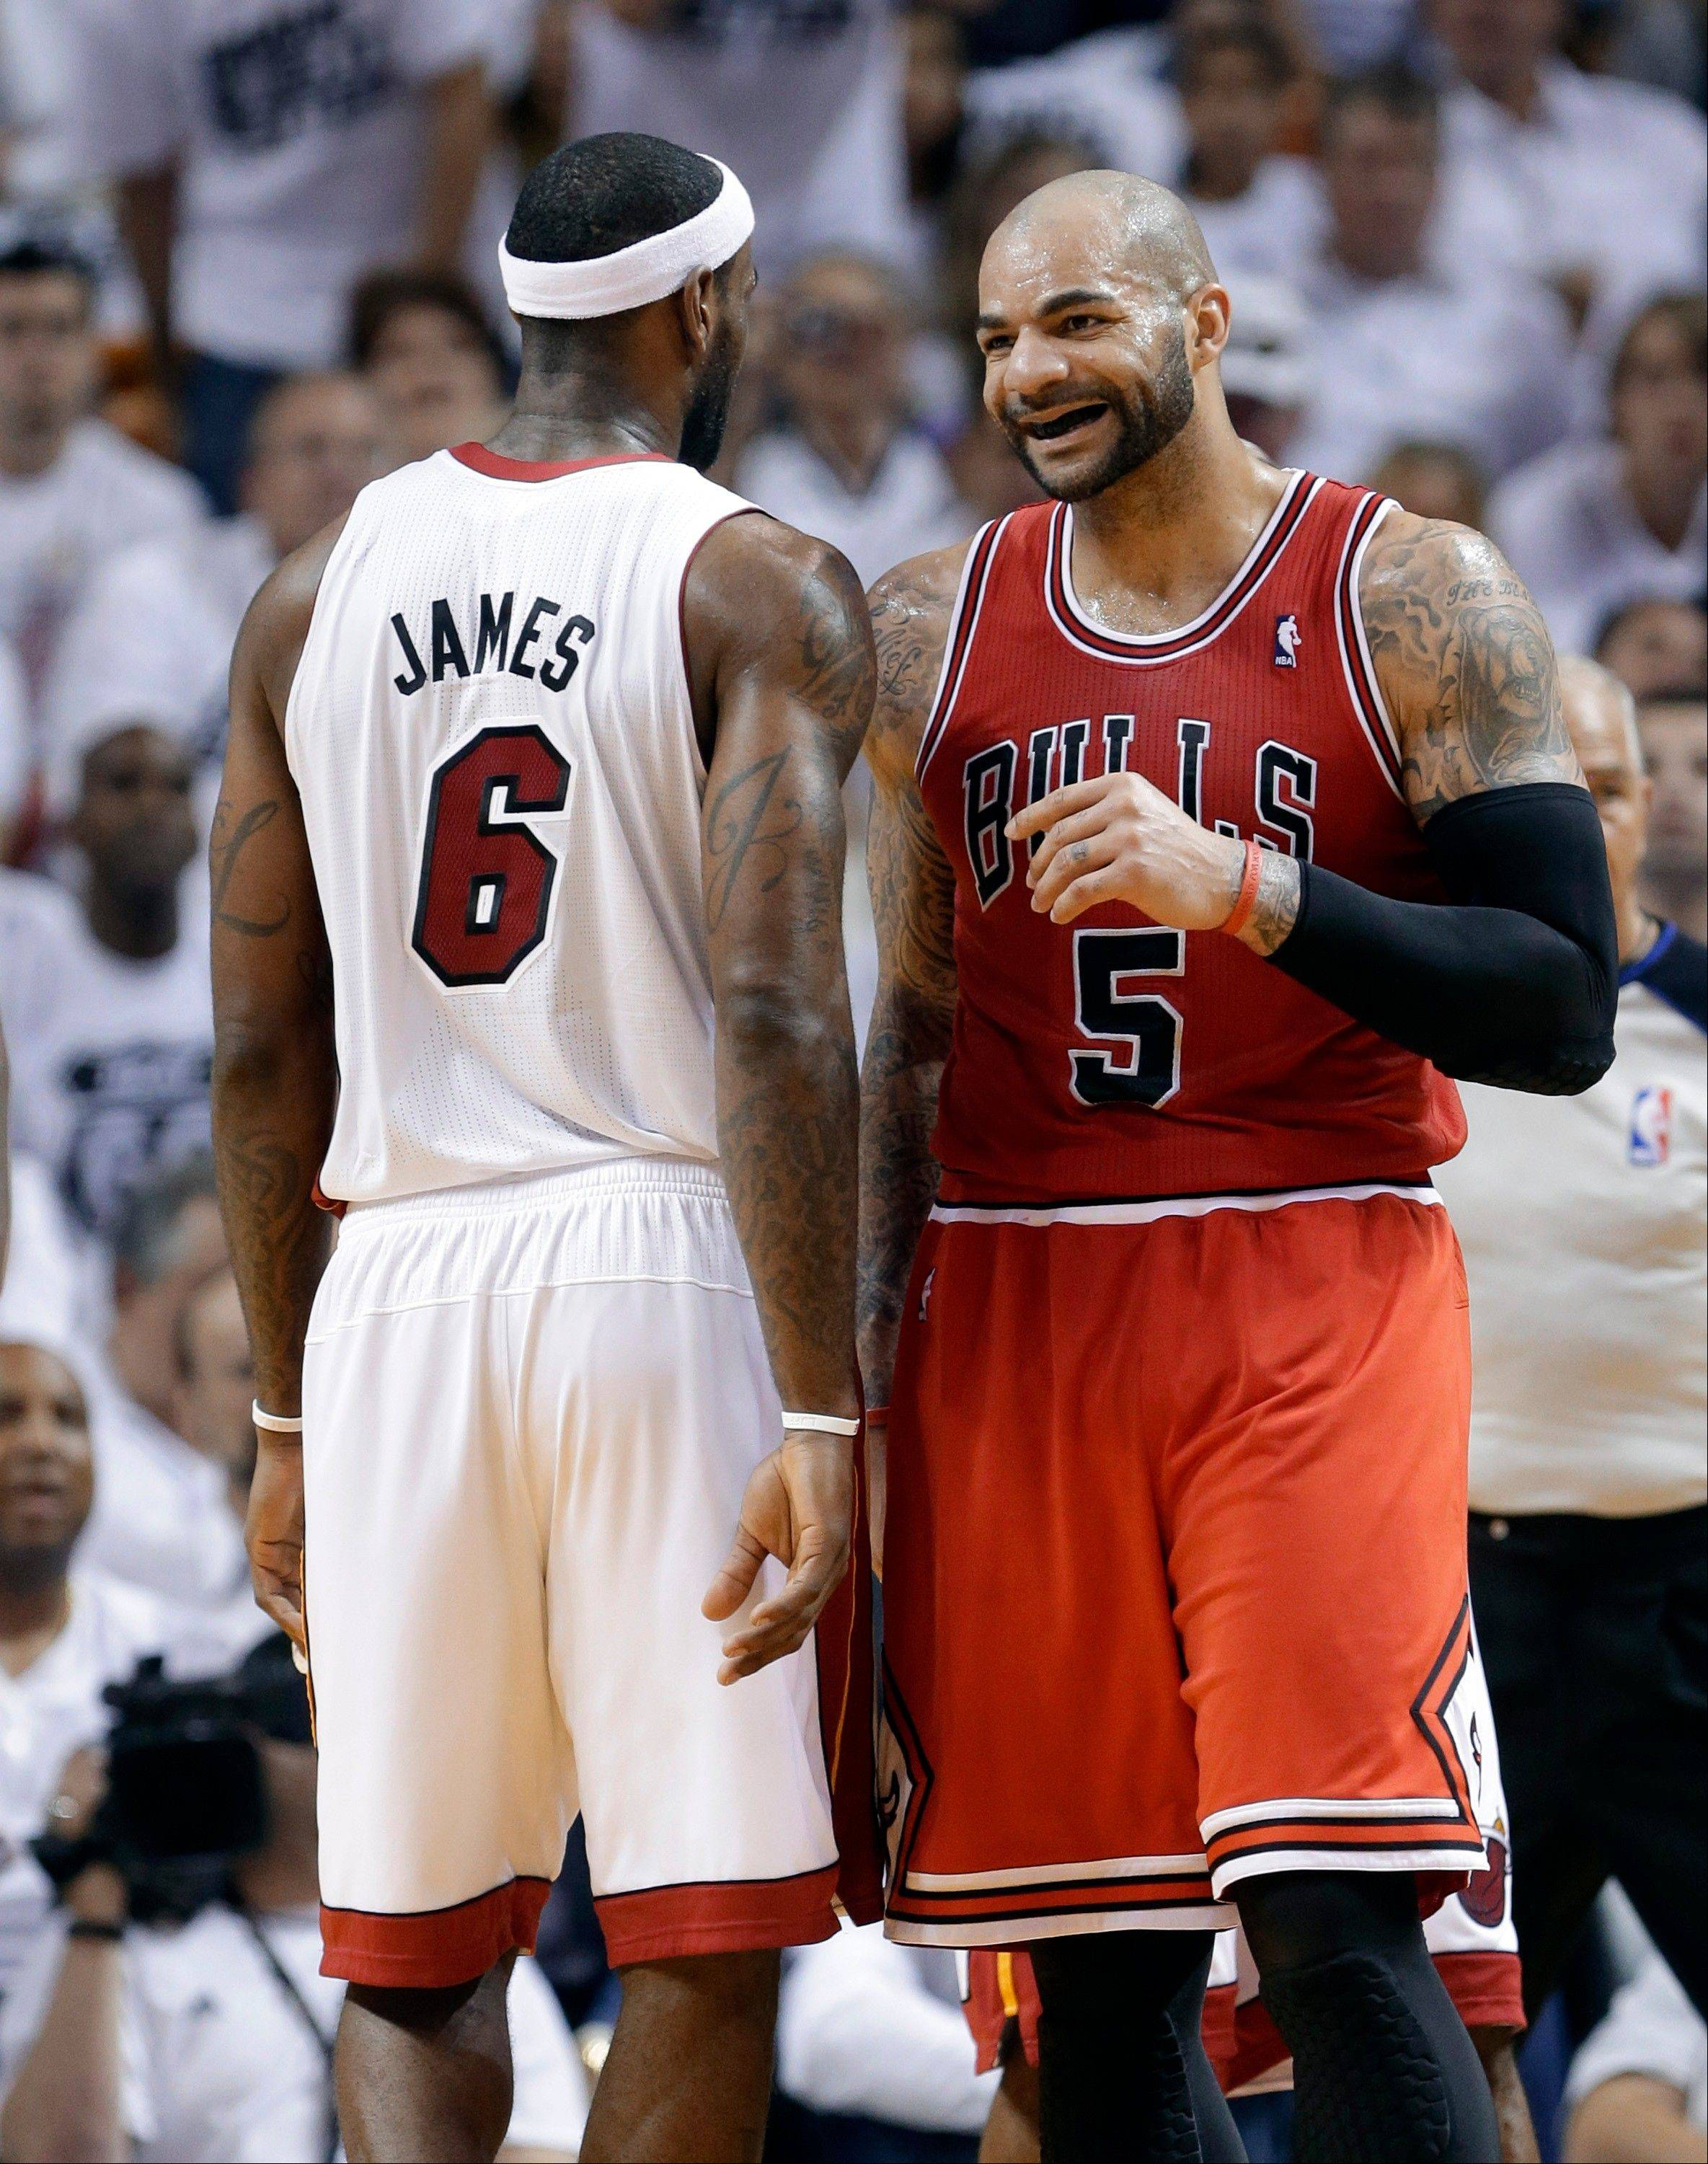 Miami Heat's LeBron James (6) and Chicago Bulls Carlos Boozer (5) stand on the court during the first half of Game 5 of an NBA basketball Eastern Conference semifinal, Wednesday, May 15, 2013, in Miami.